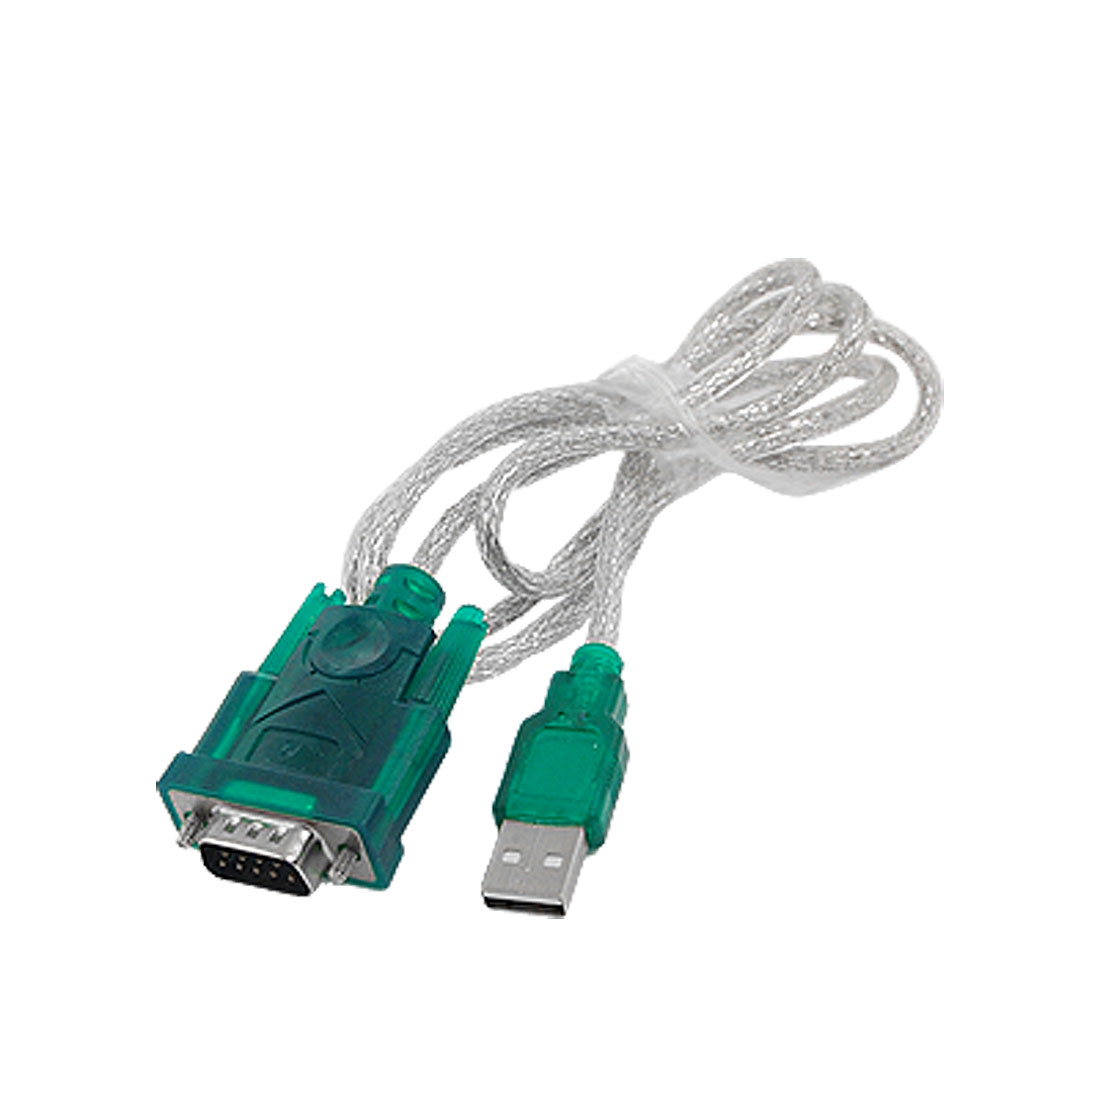 PDA USB 2.0 to DB9 DB25 Serial 9 Pin RS232 Adapter Cable Green